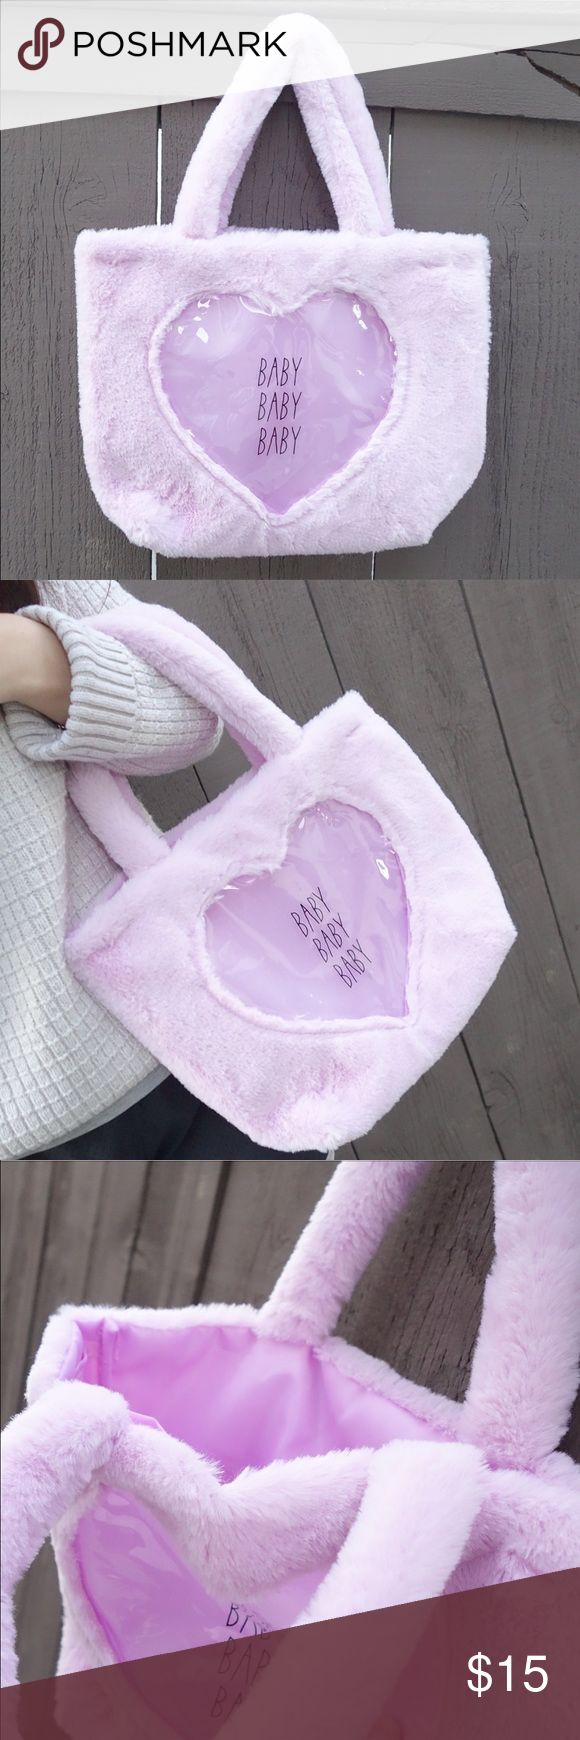 """Baby Purple Plush Kawaii Tote Bag Clear Heart SUPER ADORABLEEEE Kawaii plush baby purple tote bag with a clear heart on one side! Has a divider behind the clear heart to separate the compartments. Measures approximately 13"""" x 10"""". Has a bottom gusset. Brand new with tags. ///Tags: Japan Brandy Melville Lolita princess urban forever 21 Bags Totes"""